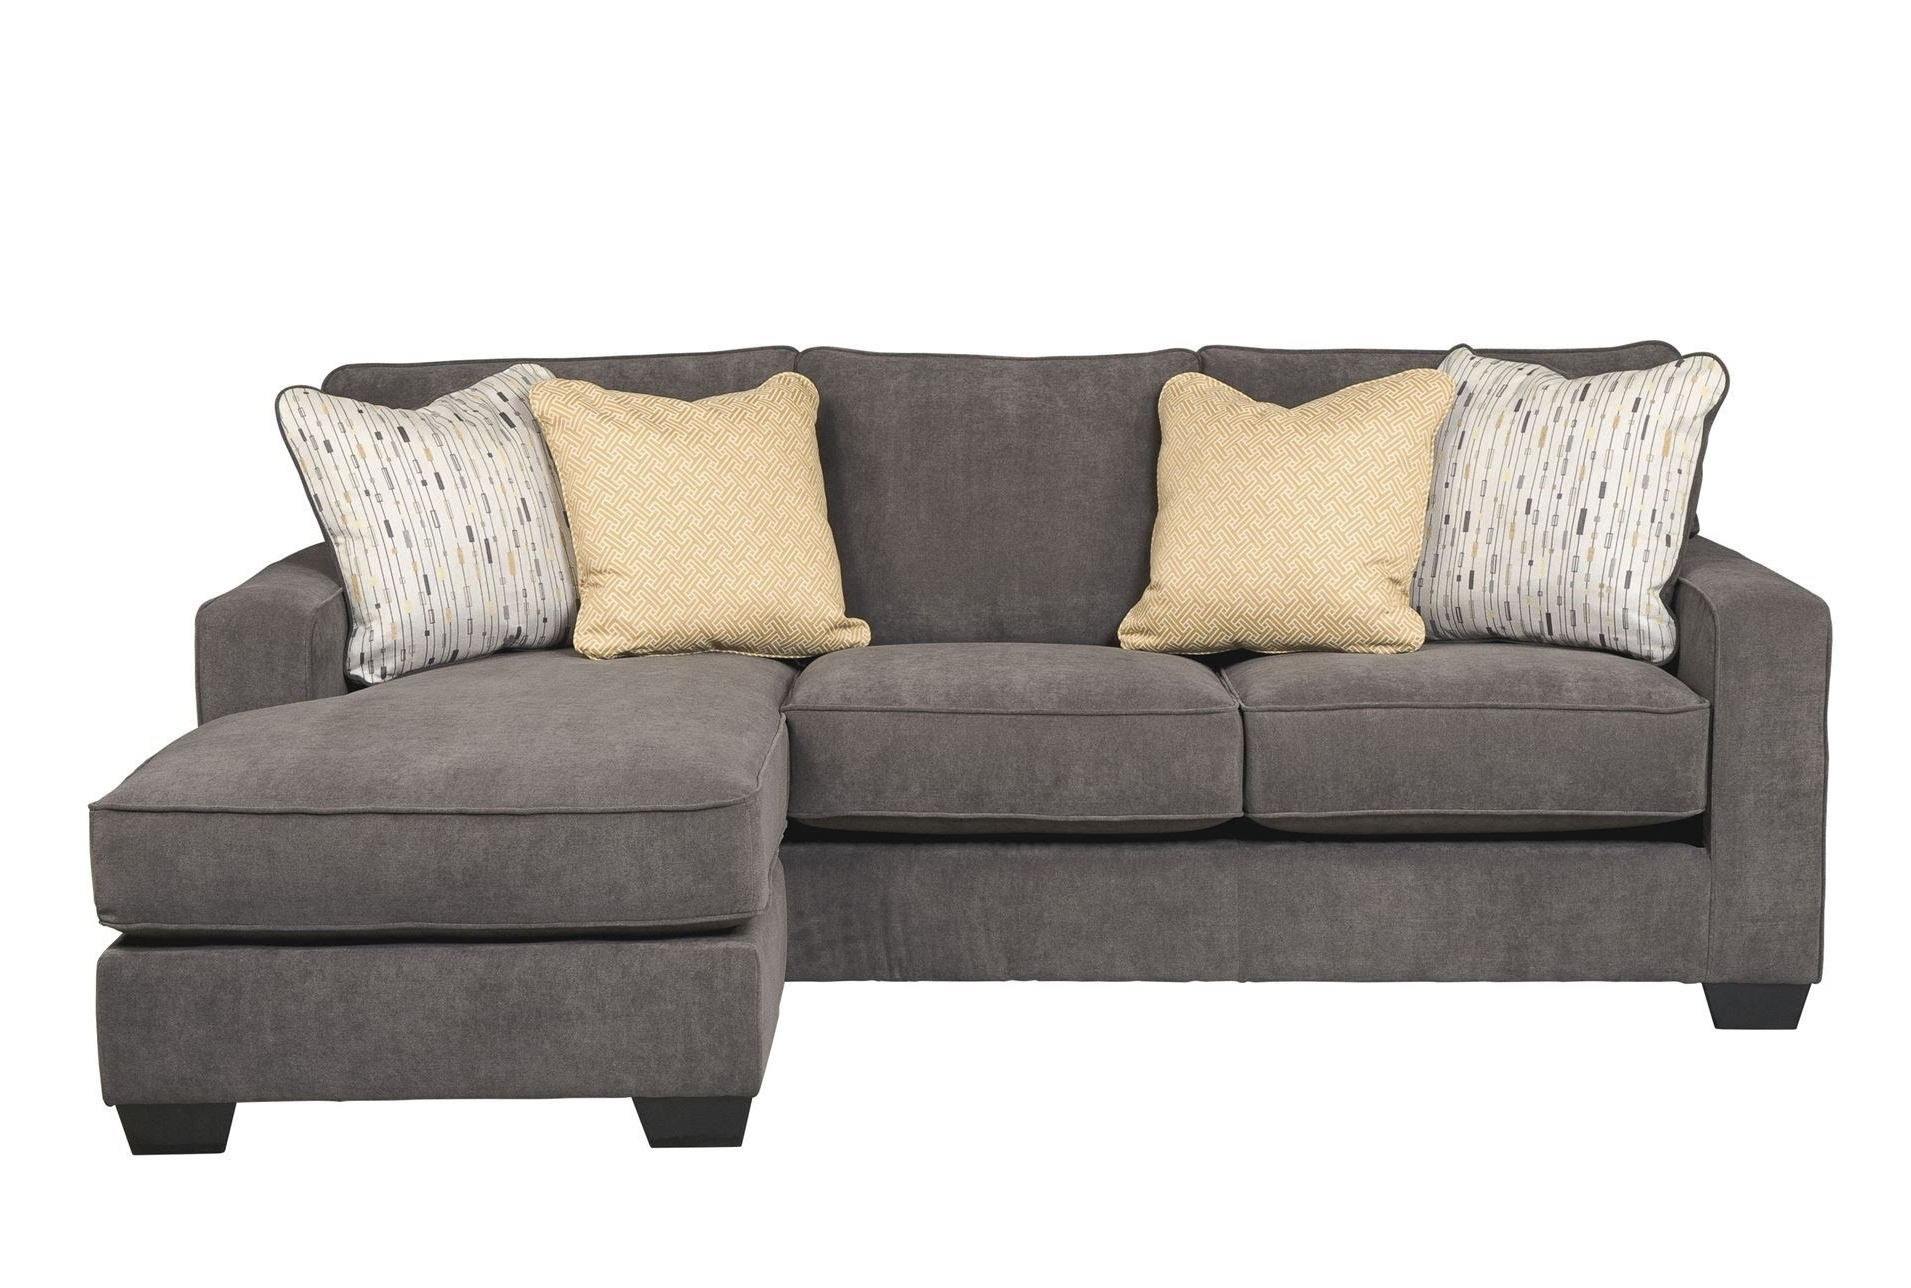 Interesting Couch With Chaise Lounge Ideas – Youtube Throughout Trendy Small Couches With Chaise Lounge (Gallery 4 of 15)